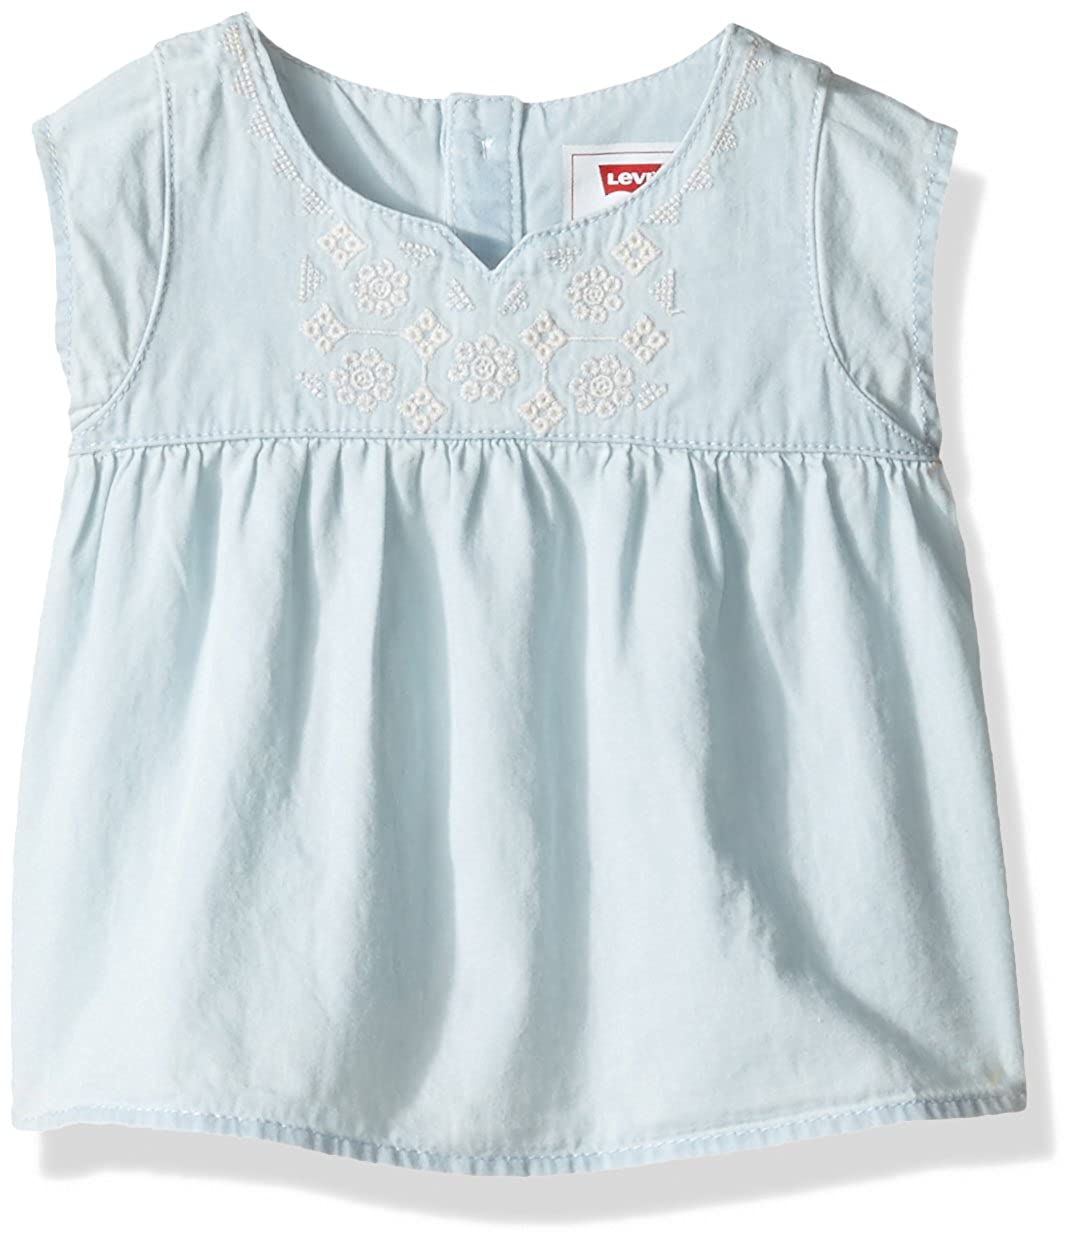 Levi's Baby Girls' Sleeve Peasant Top 114335